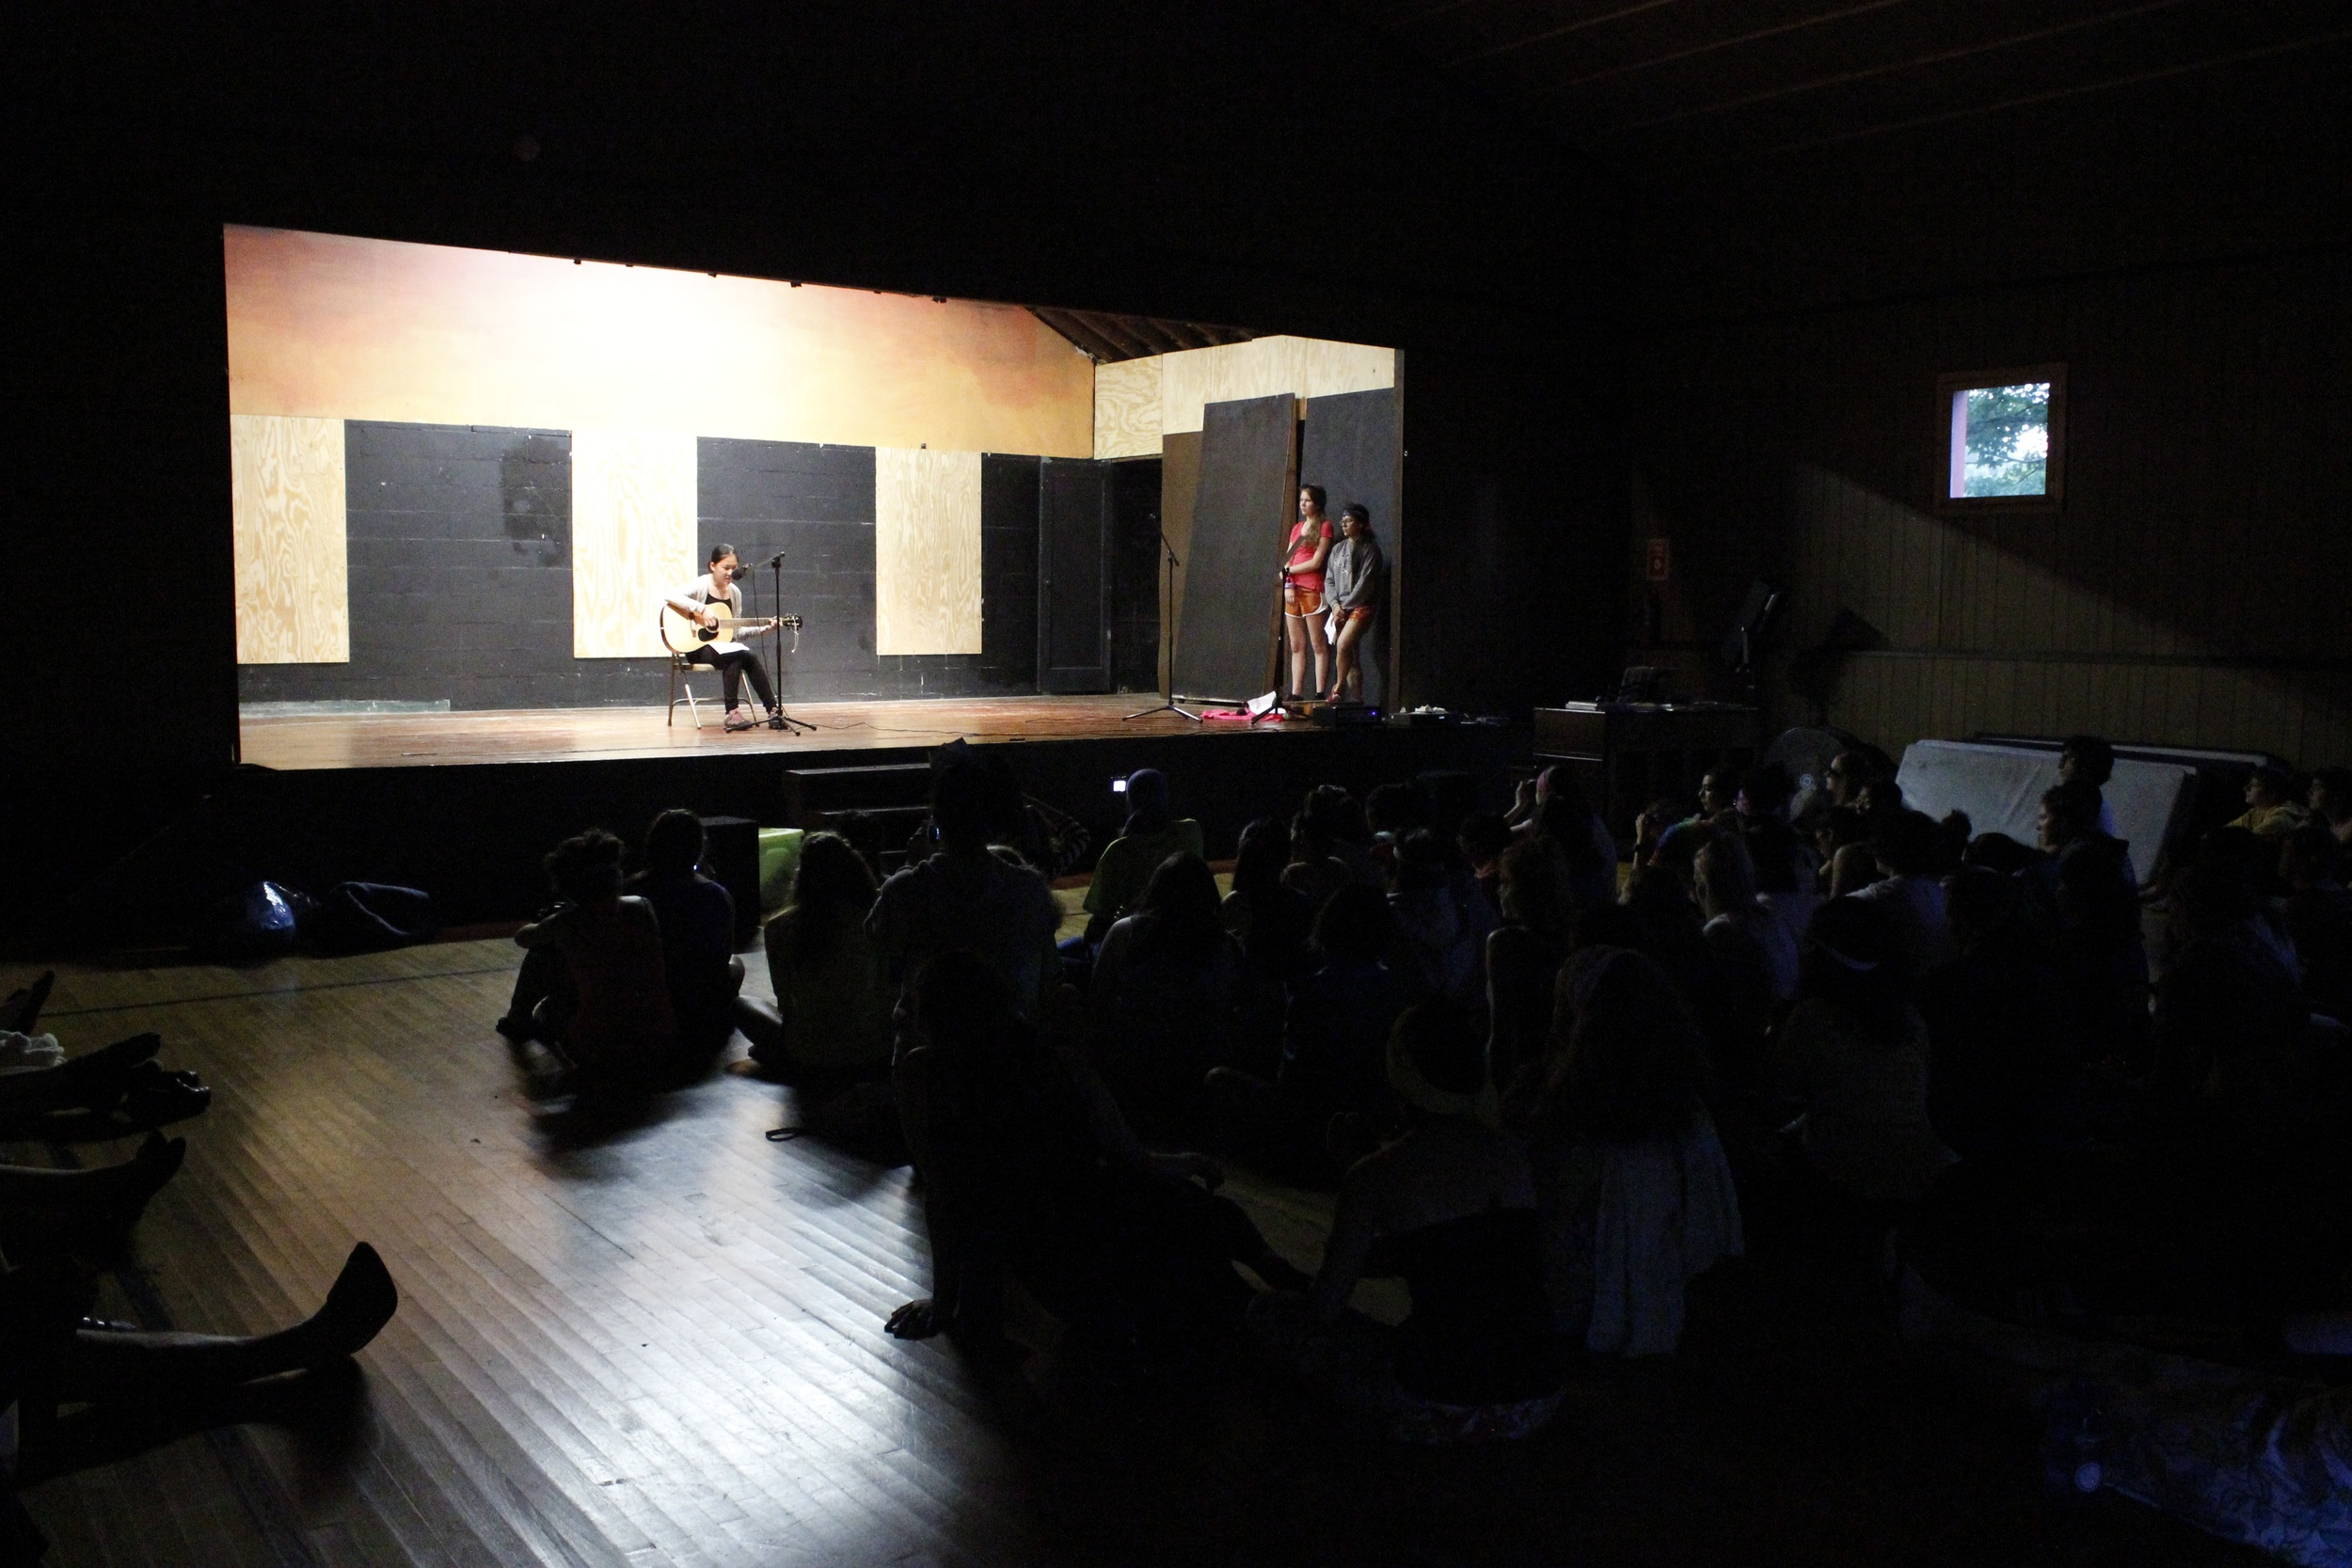 Every week, campers have the chance to showcase their talents and abilities in a camper-produced show.